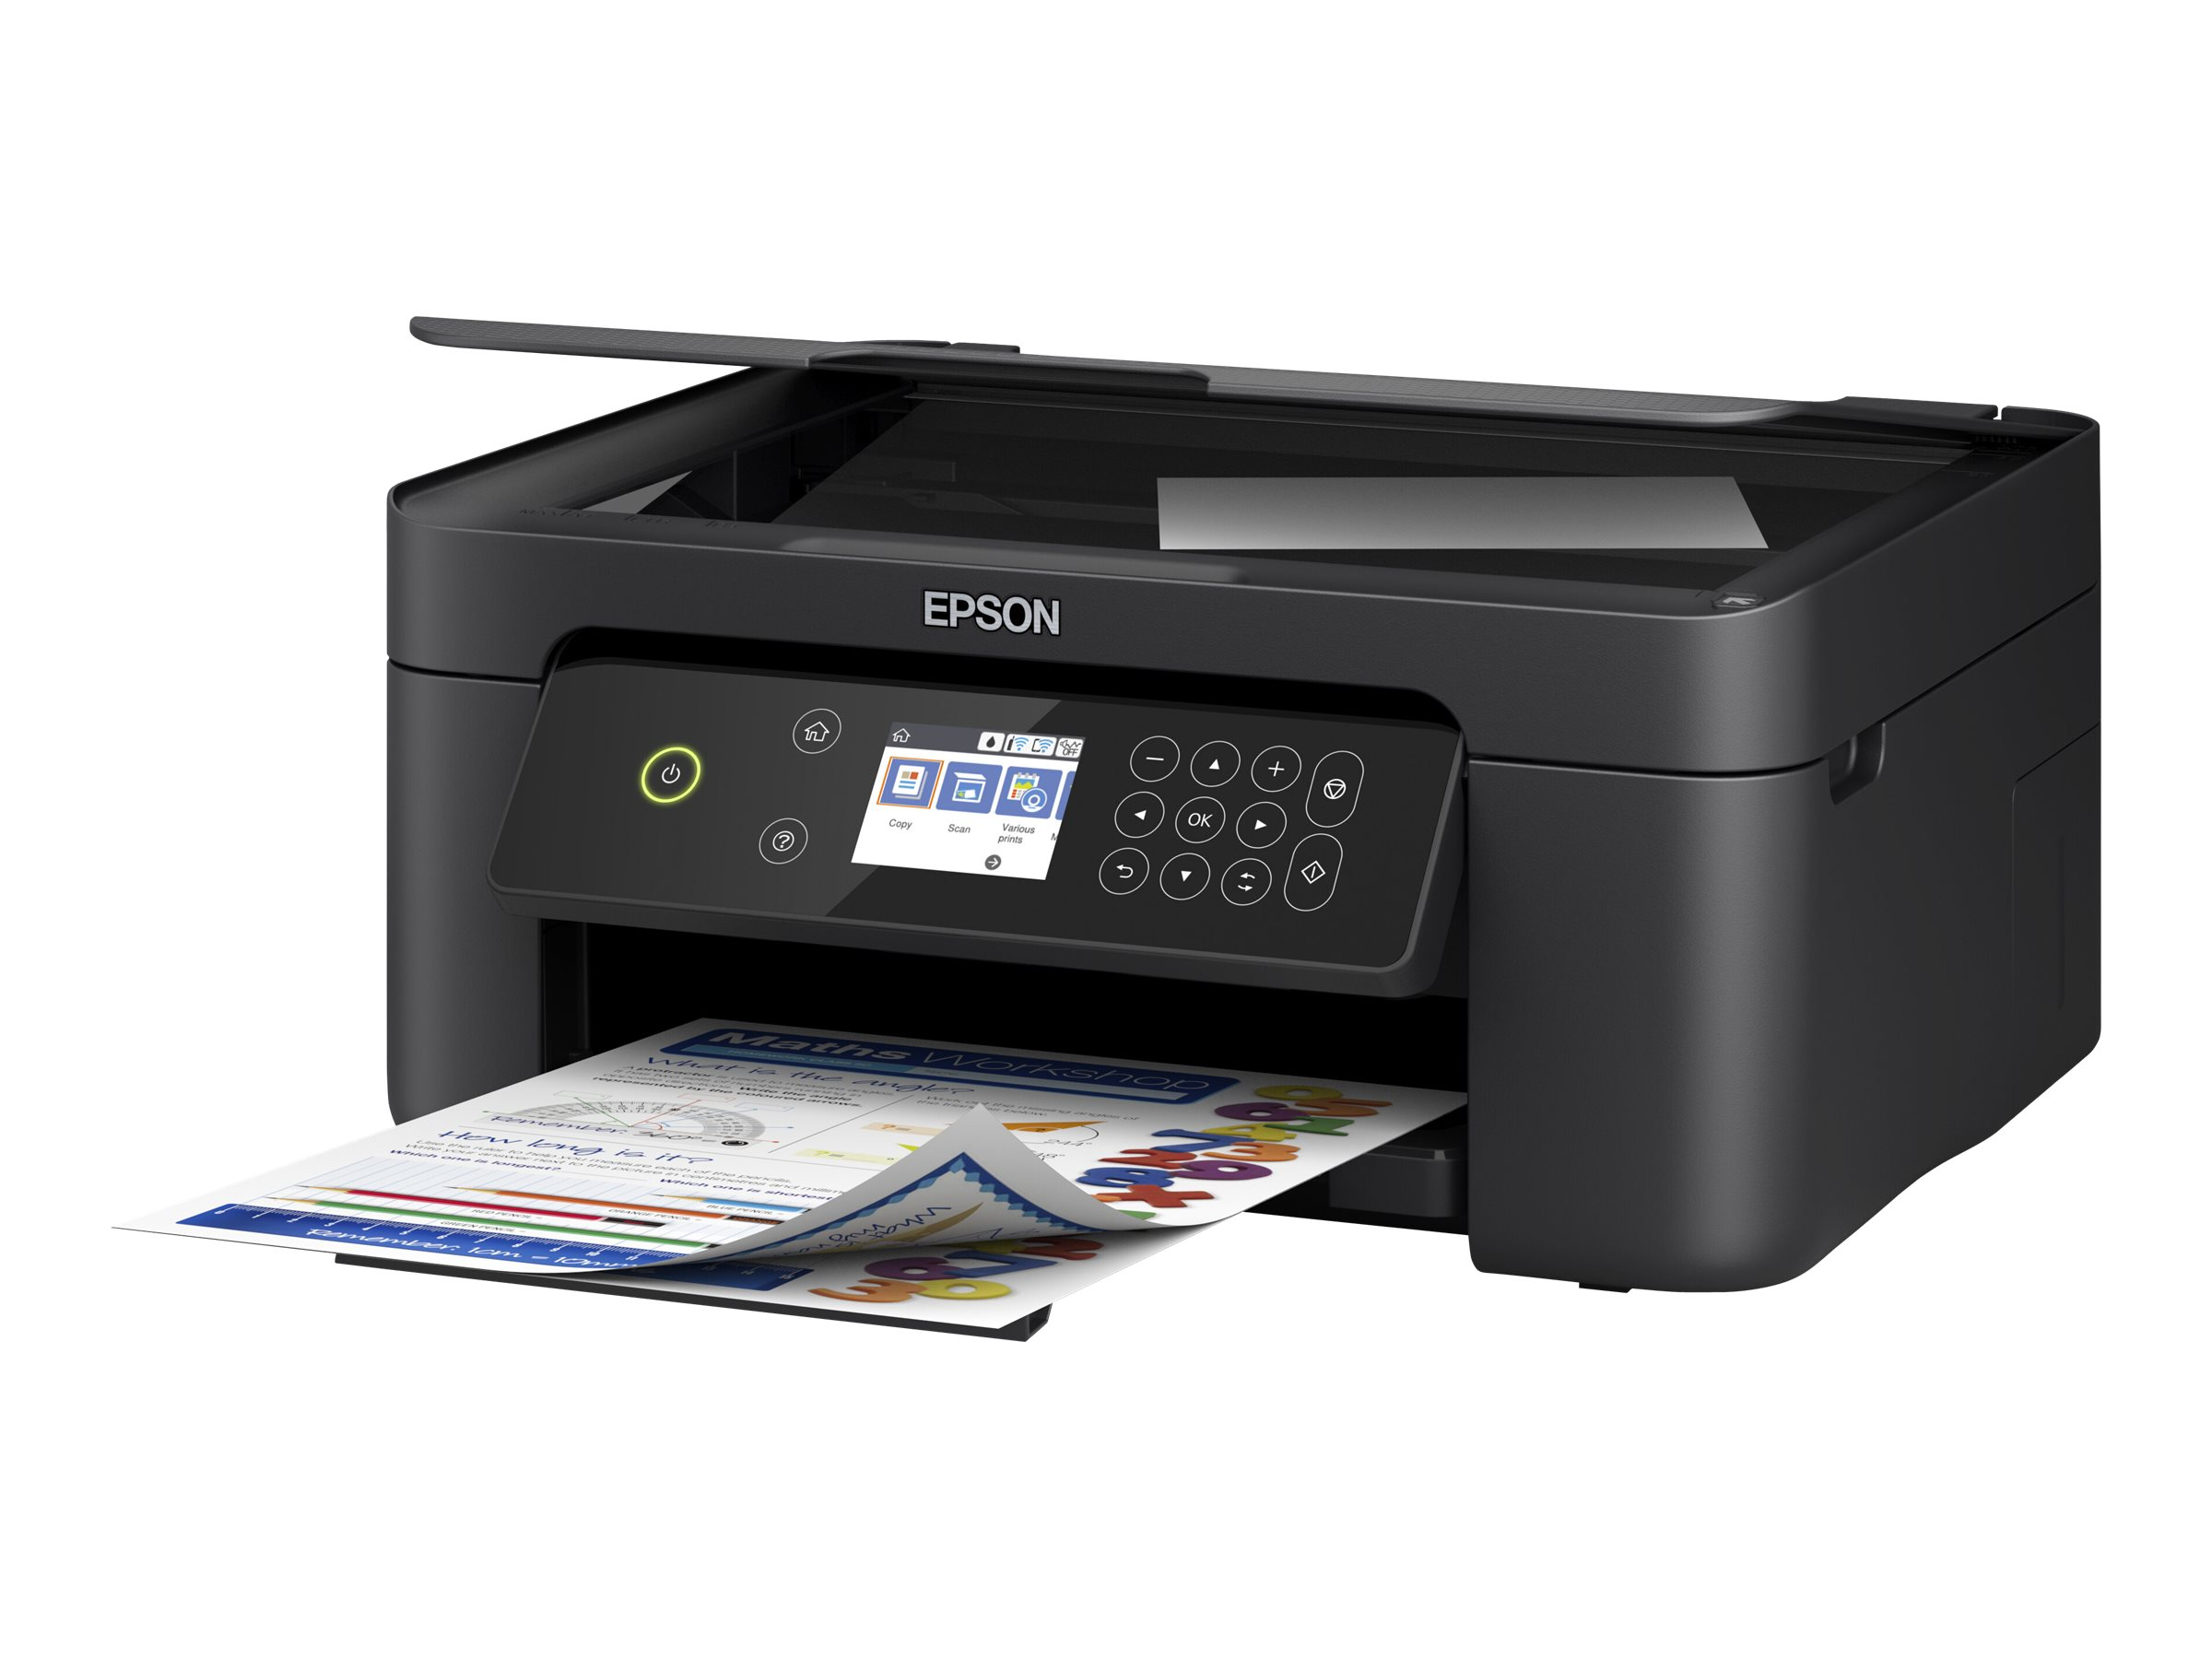 Epson Expression Home XP-4100 - Multifunktionsdrucker - Farbe - Tintenstrahl - A4 (210 x 297 mm)